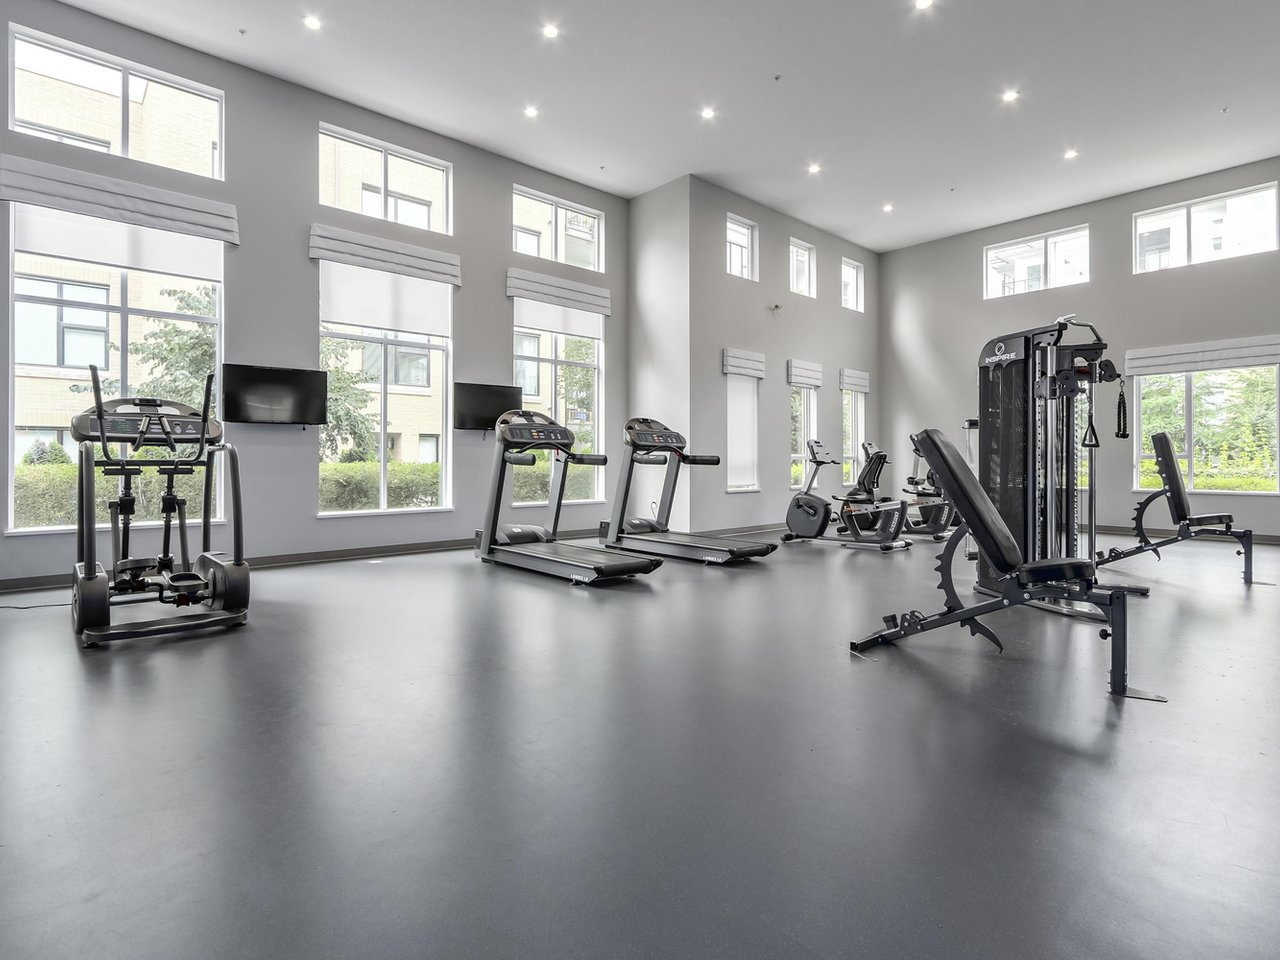 Building Amenity: Gym - West Cambie - 9388 Tomicki Avenue, Richmond, BC, Canada